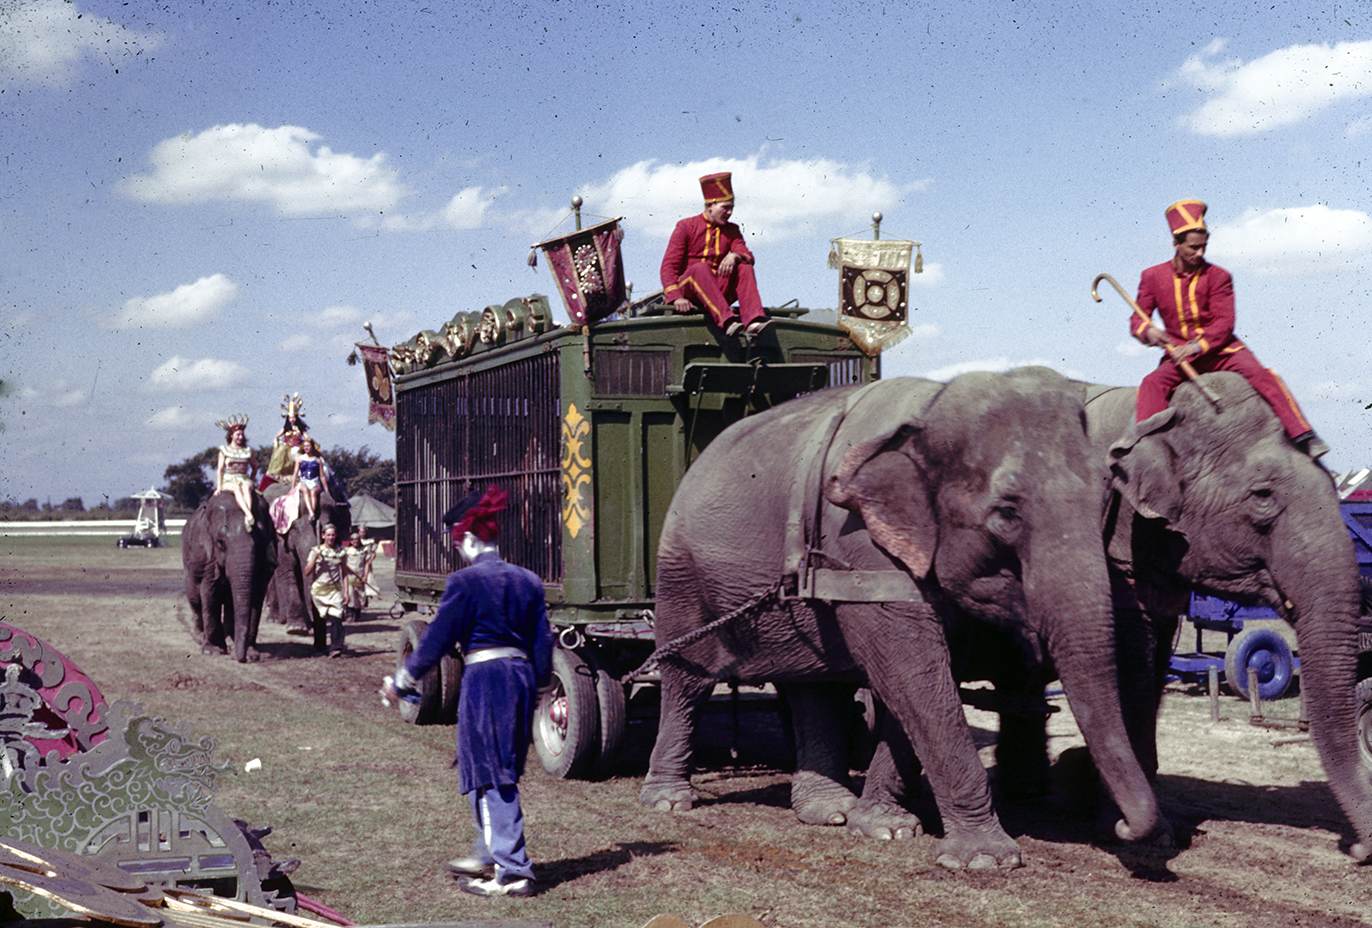 Color image of two elephants pulling green circus cage wagon. Men in red outfits sit atop one elephant and the cage wagon.